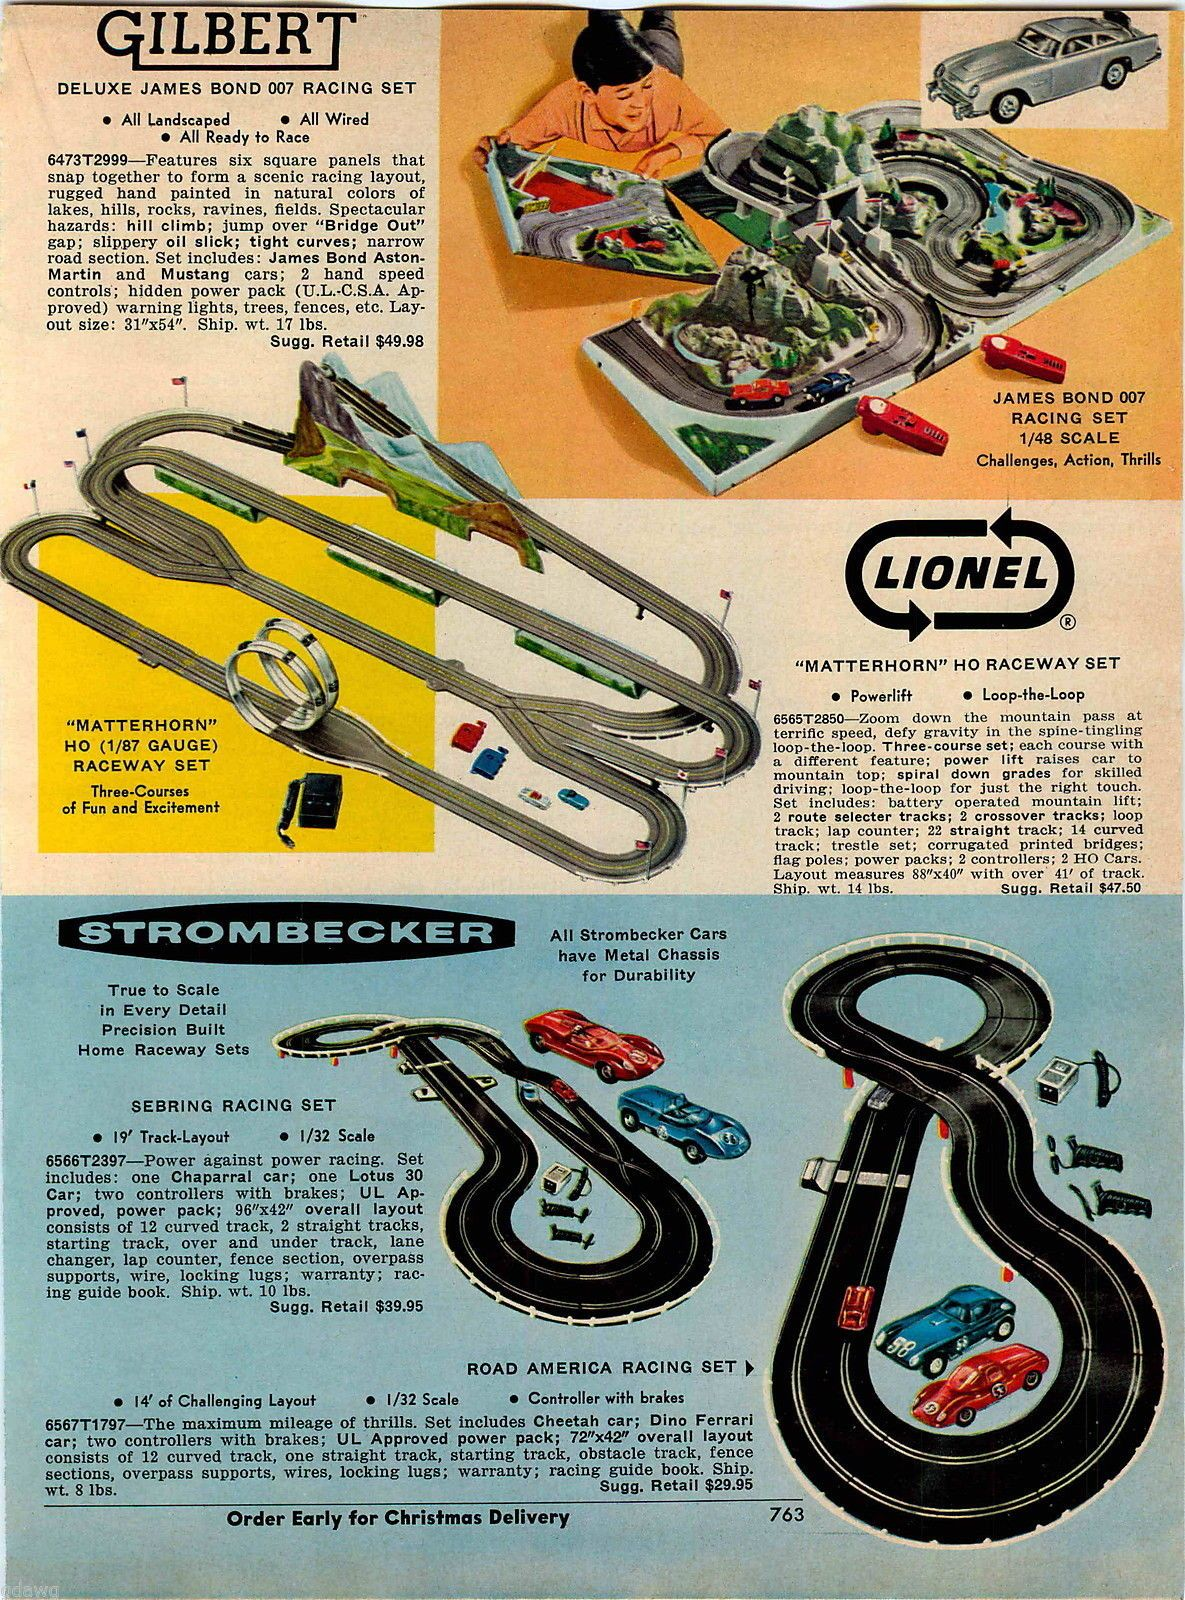 medium resolution of 1967 advert gilbert james bond 007 lionel strombecker race car raceway toy sets ebay